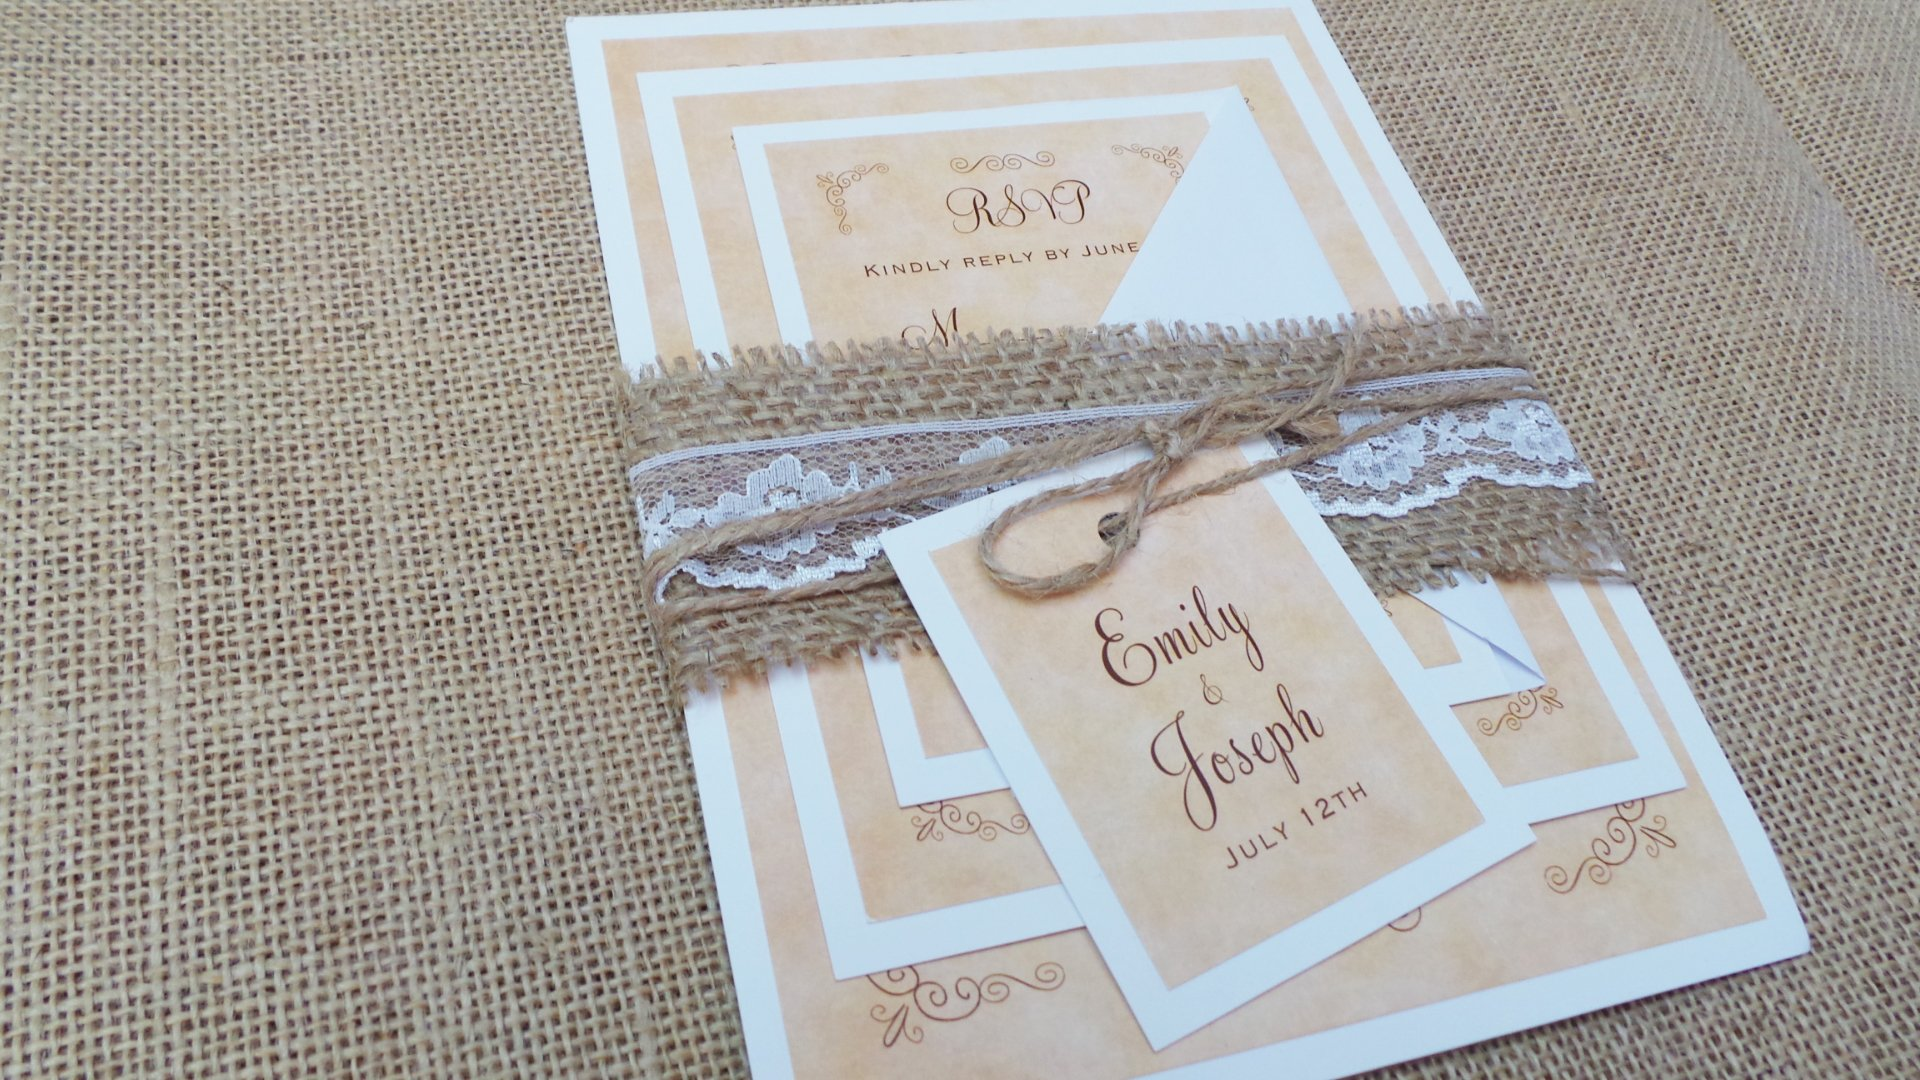 100 Wedding Invitations Rustic Country Vintage Style Twine Burlap Lace + Envelopes + Response Cards Set